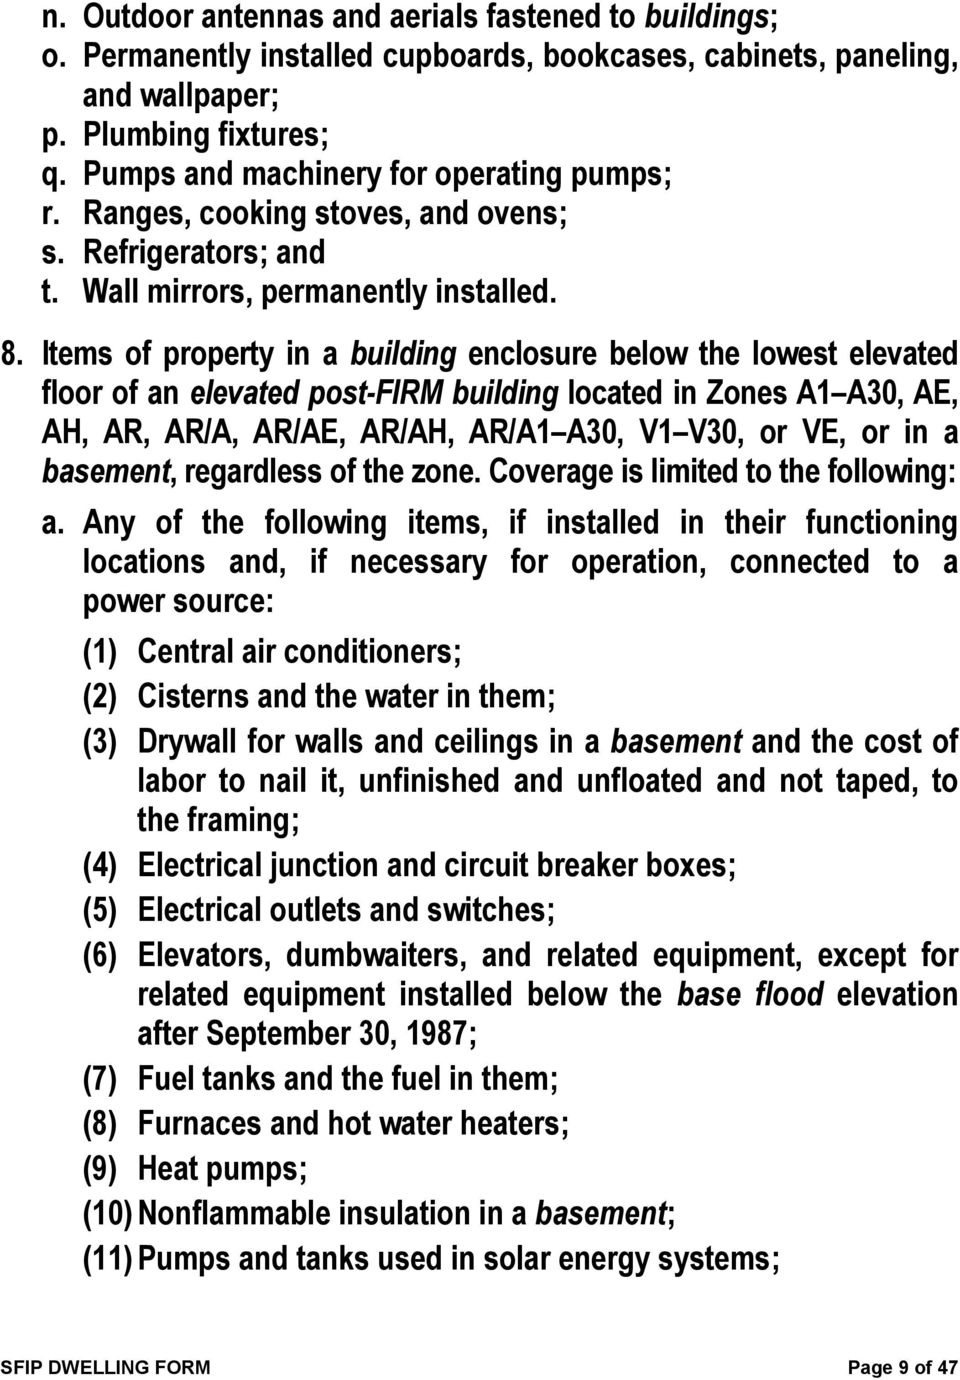 Items of property in a building enclosure below the lowest elevated floor of an elevated post-firm building located in Zones A1 A30, AE, AH, AR, AR/A, AR/AE, AR/AH, AR/A1 A30, V1 V30, or VE, or in a